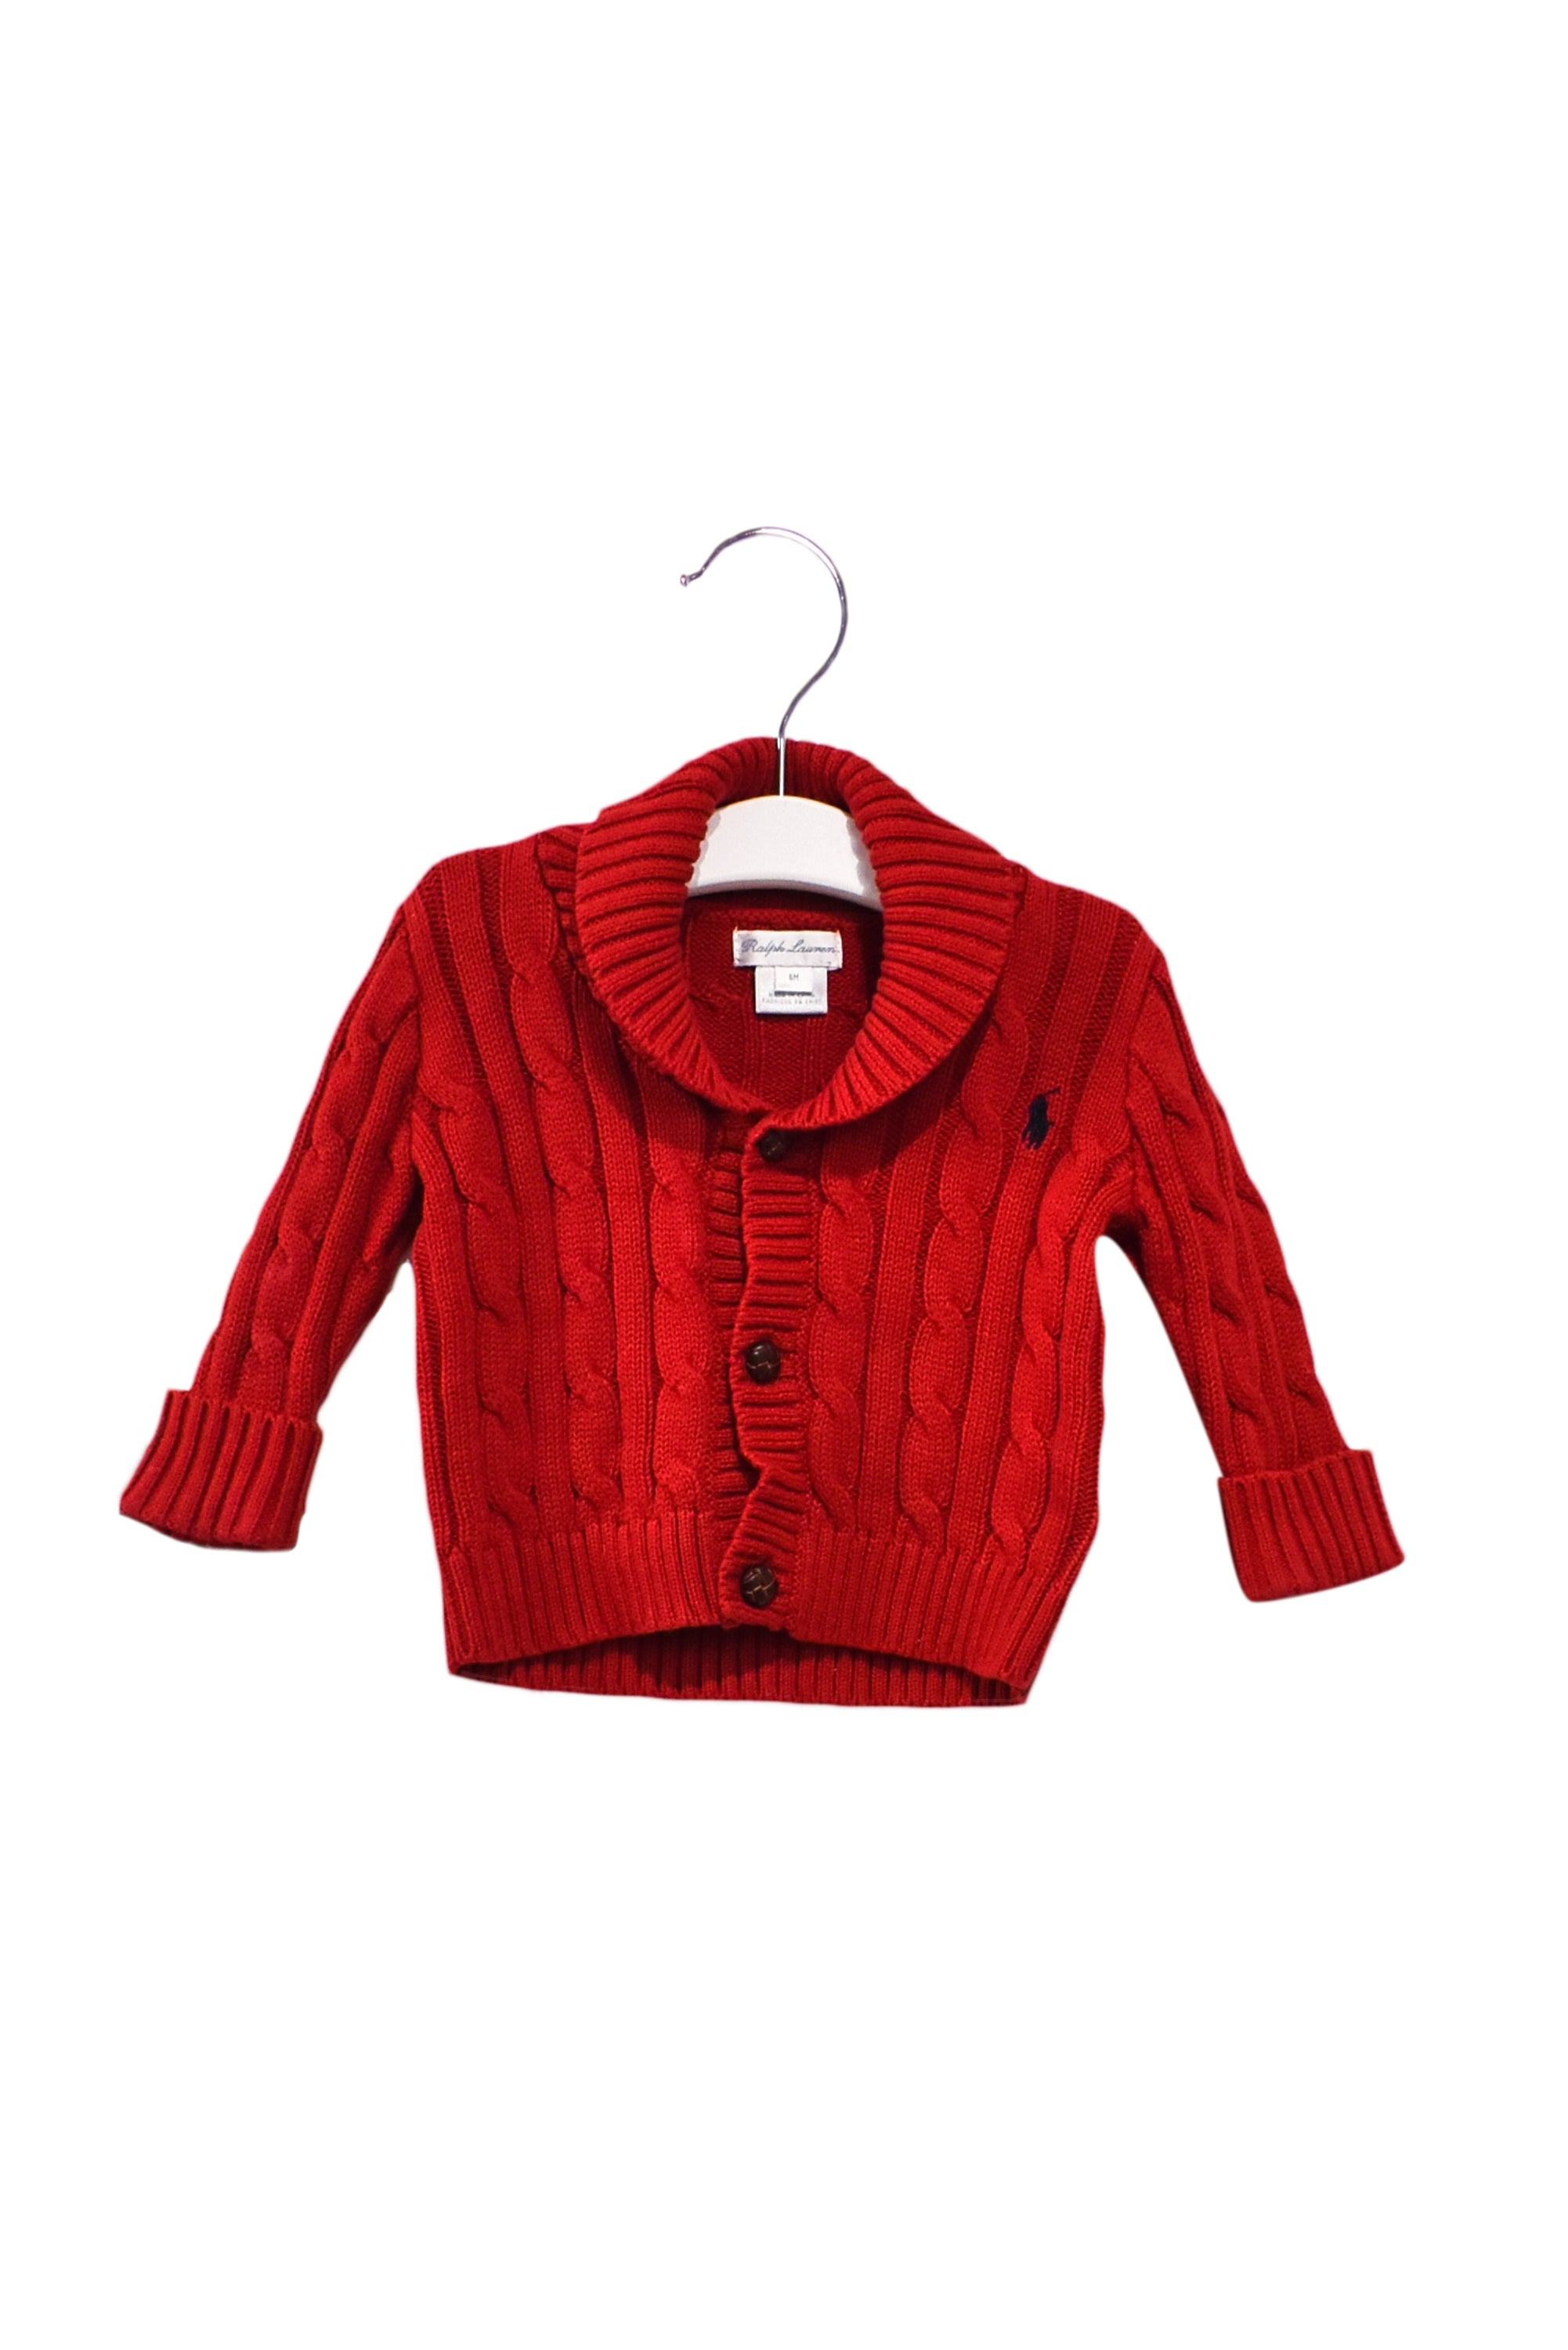 10027951 Ralph Lauren Baby~Cardigan 6M at Retykle